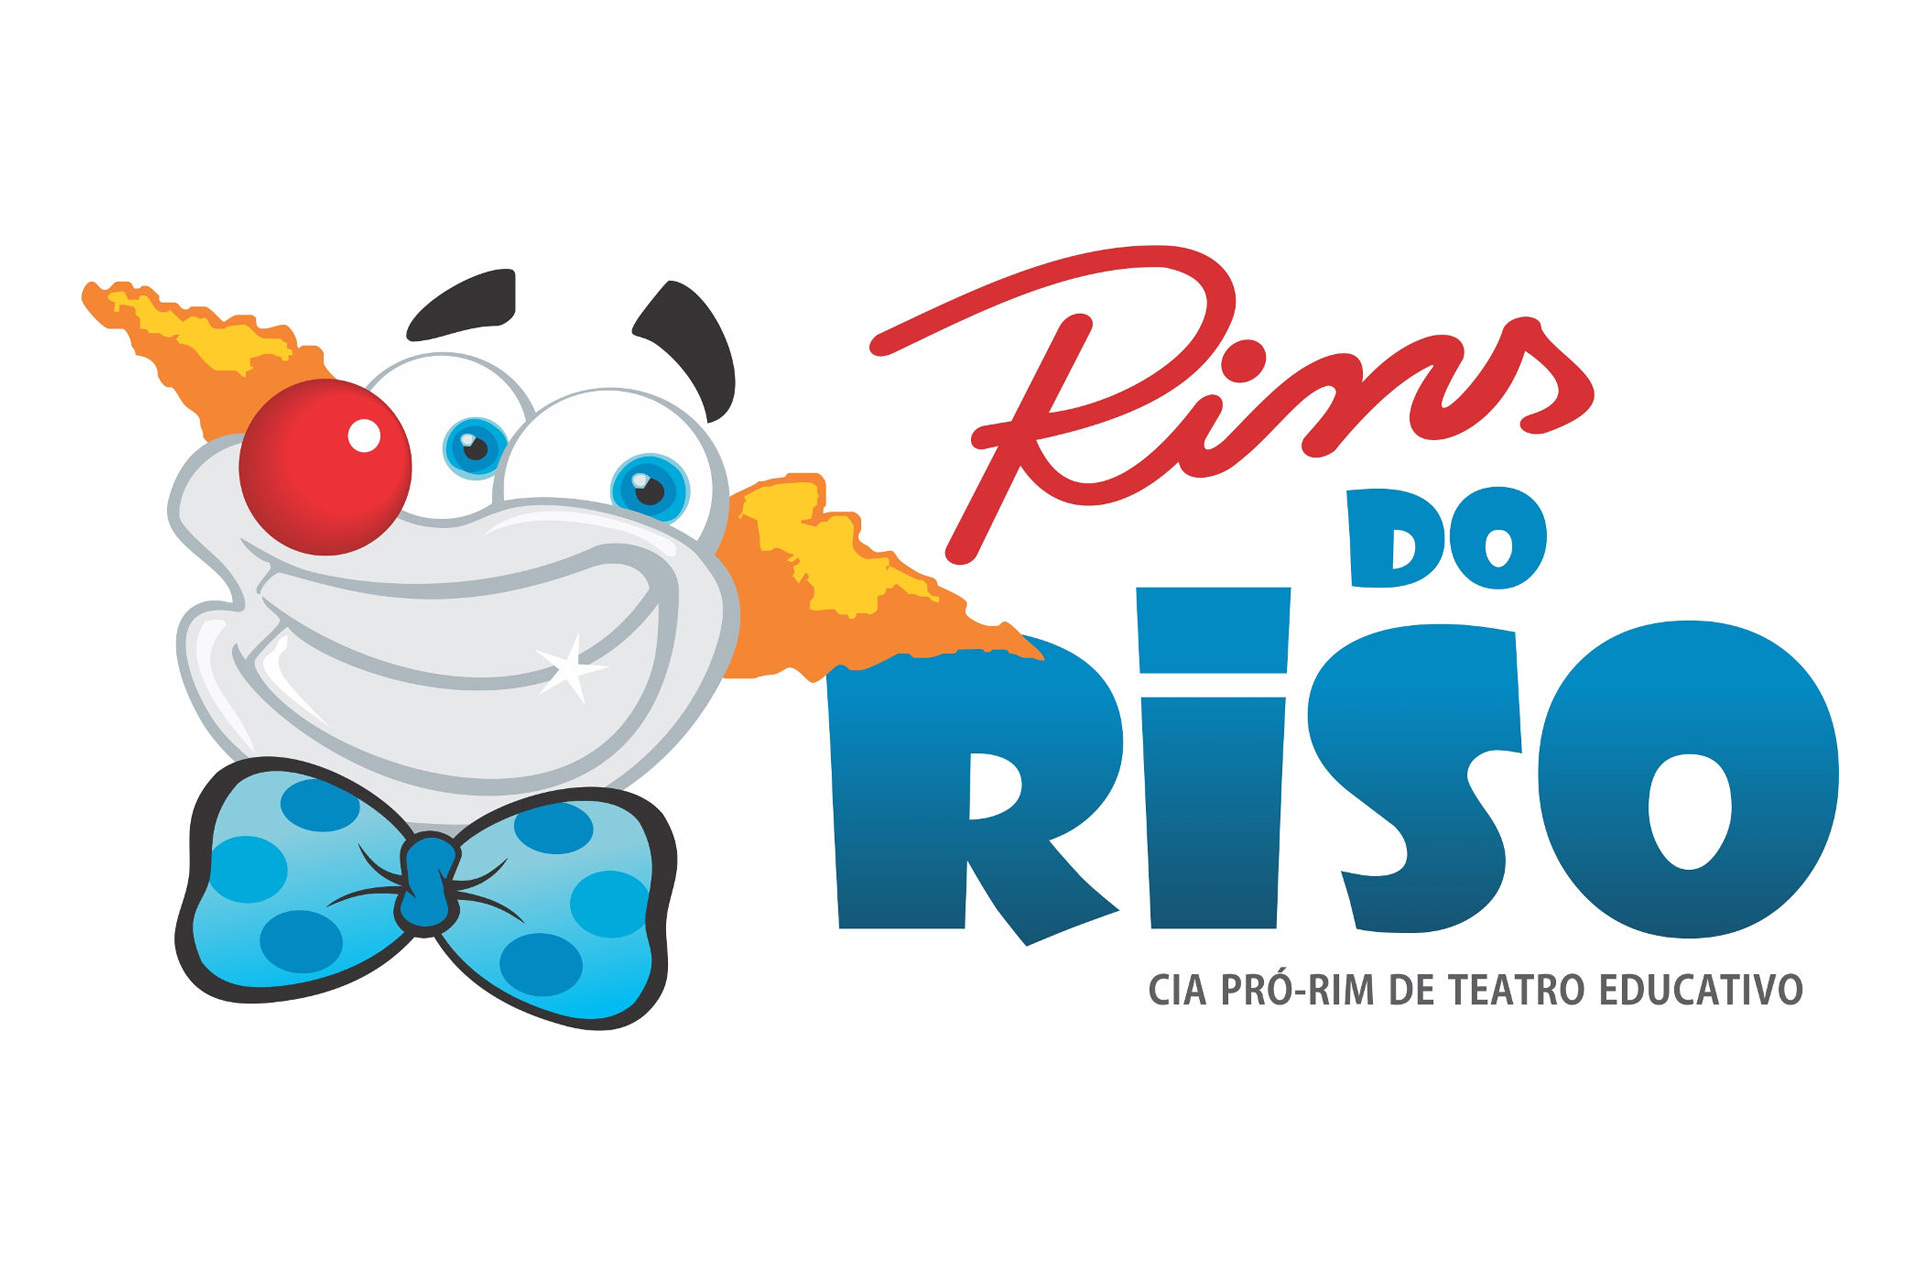 rins-do-riso